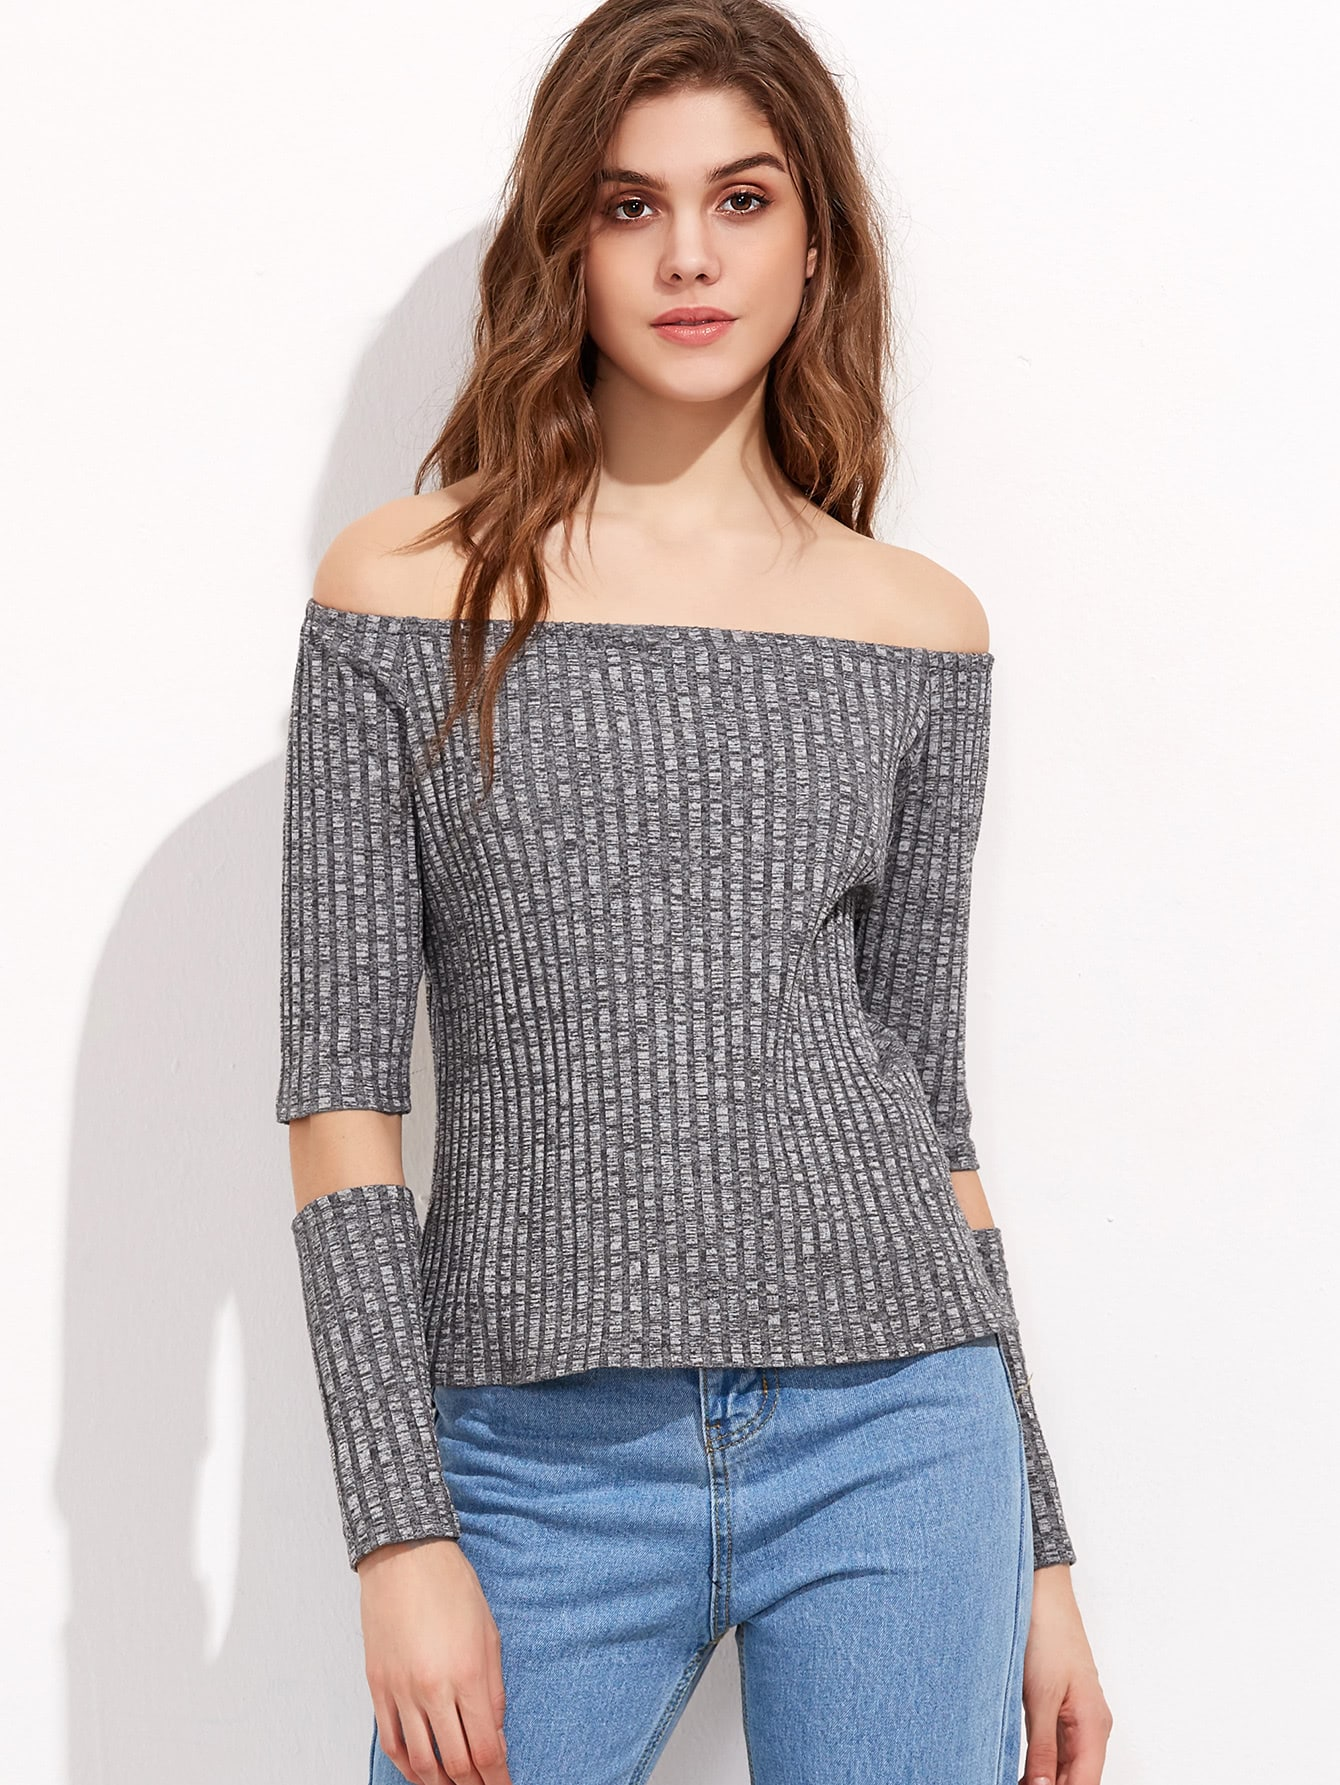 Grey Marled Off The Shoulder Ribbed T-shirt With Detachable Sleeve tee161130703